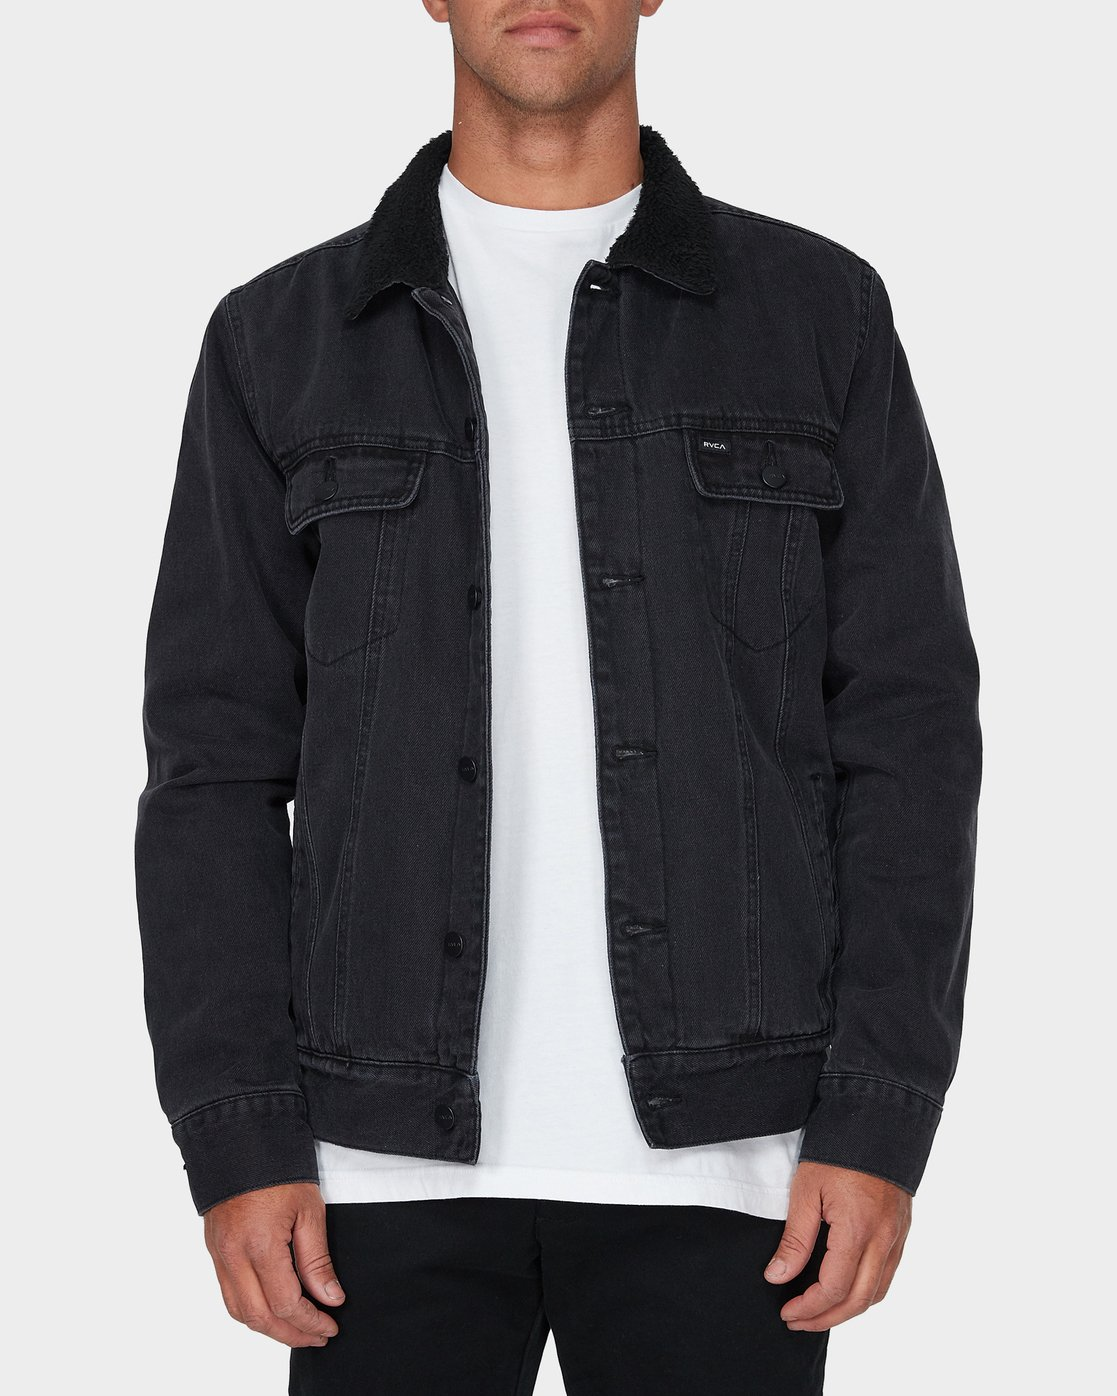 0 Daggers Denim Sherpa Jacket Black R183445 RVCA